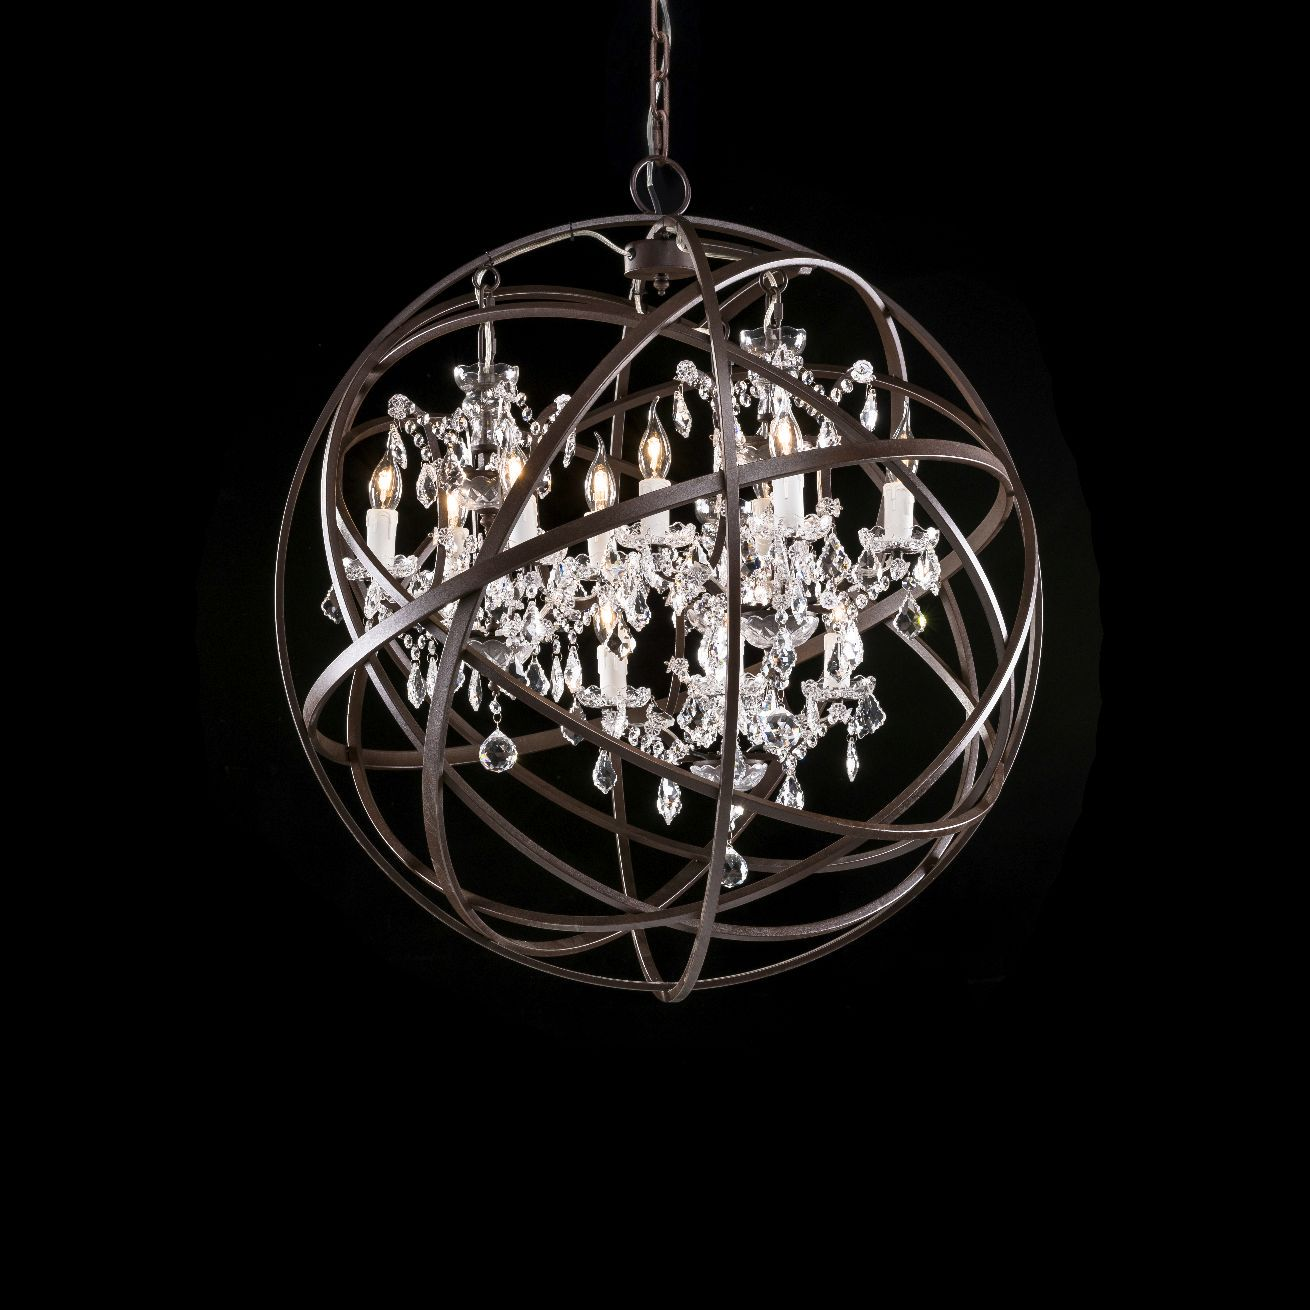 timothy oulton crystal chandelier small # 31